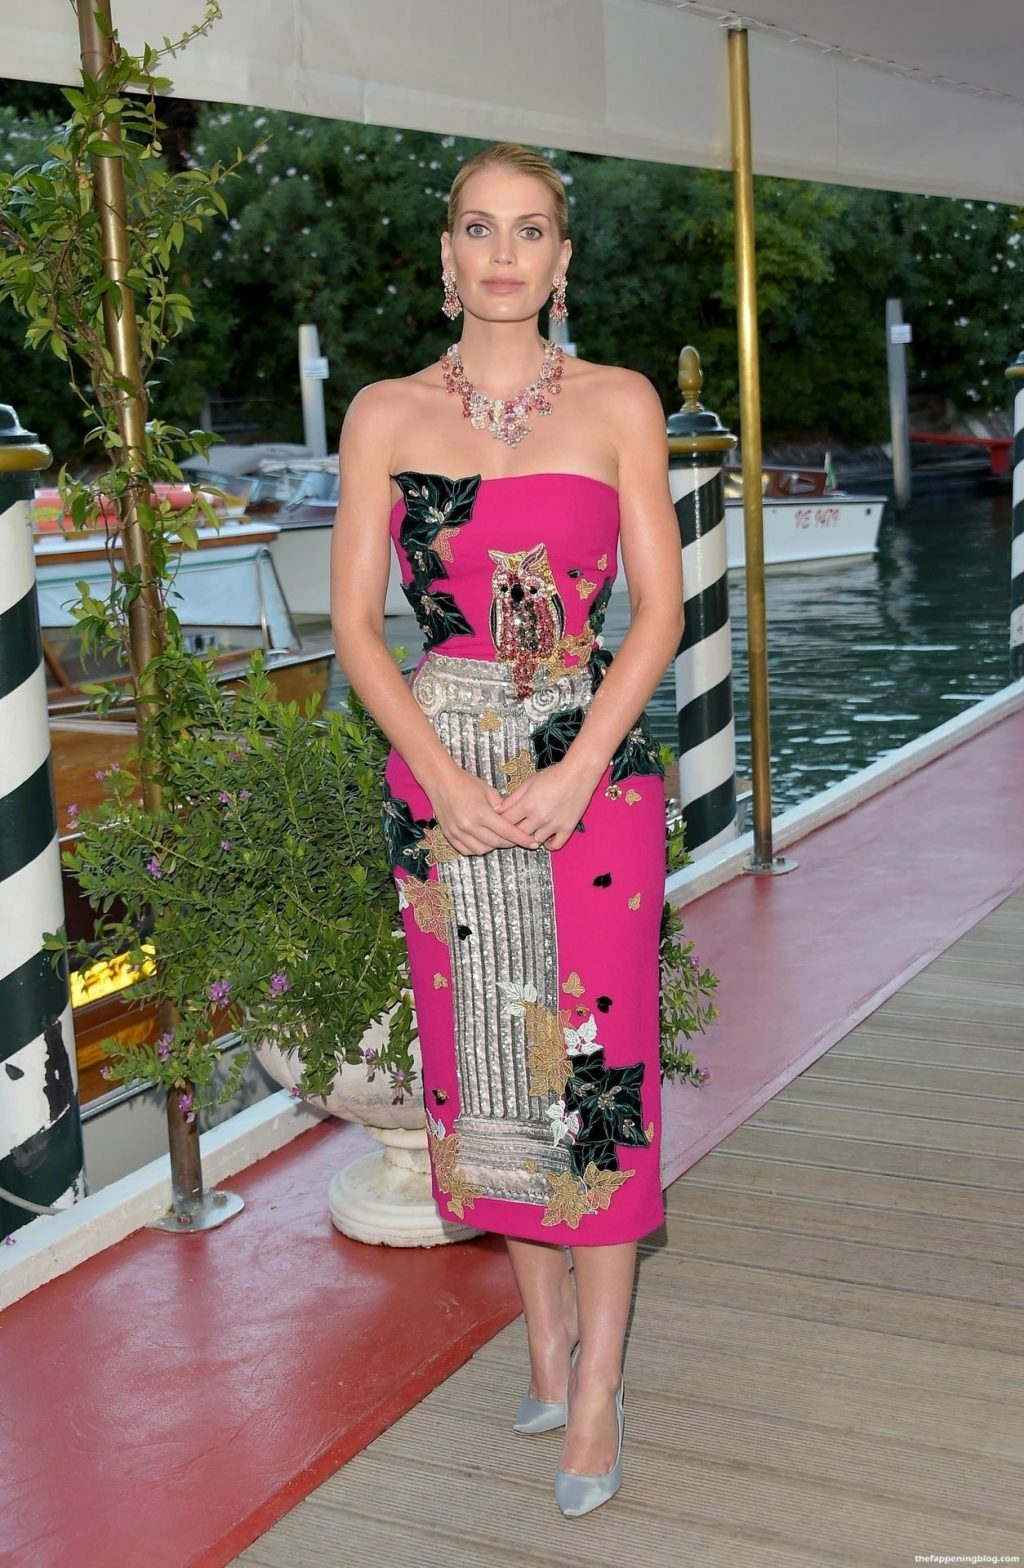 Kitty Spencer is Seen at the Dolce & Gabbana Event in Venice (14 Photos)